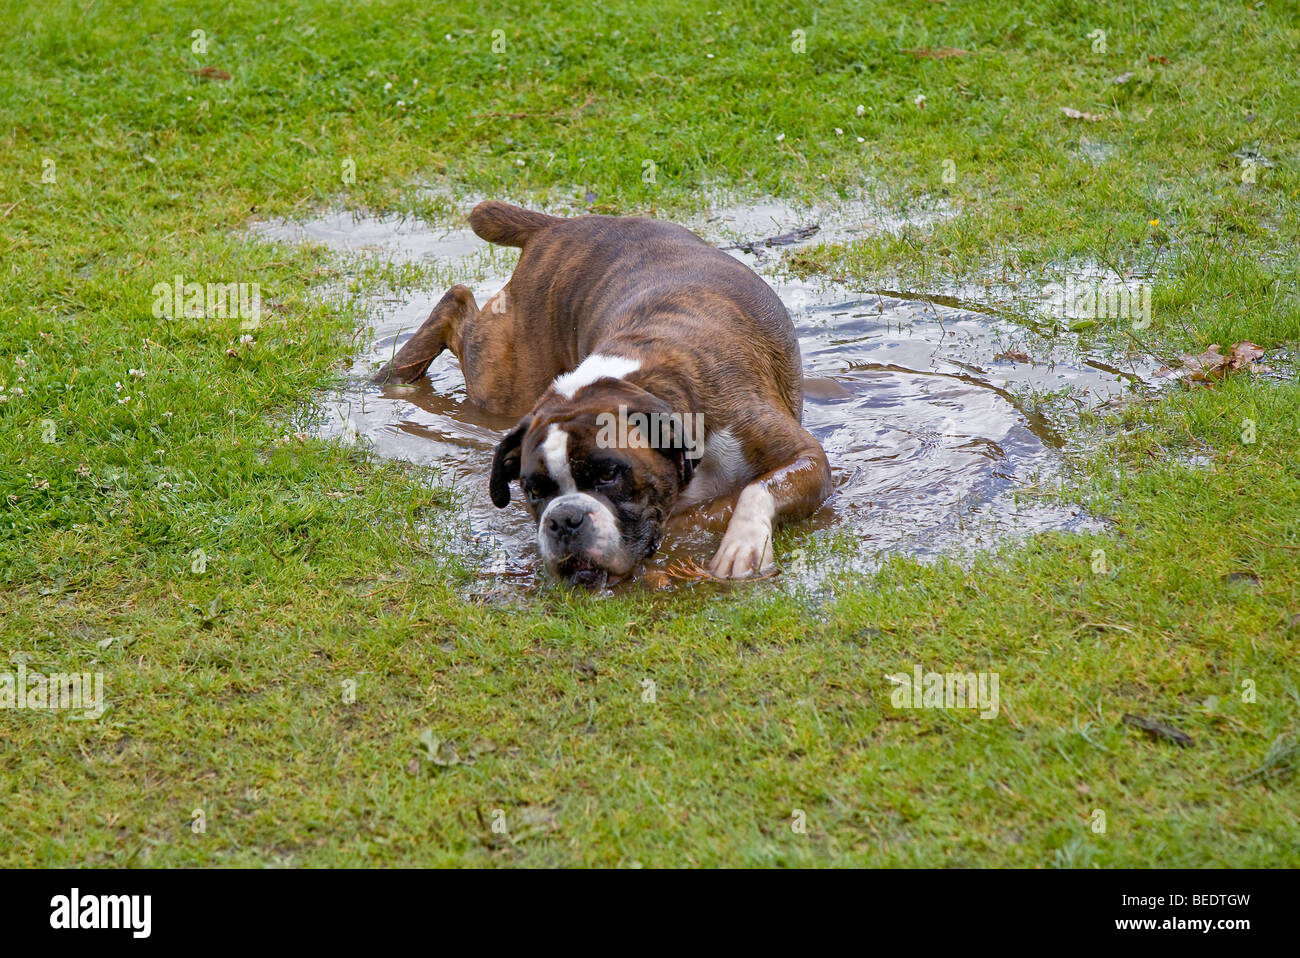 Boxer dog flaque d'eau en roulant dans l'herbe. UK Photo Stock